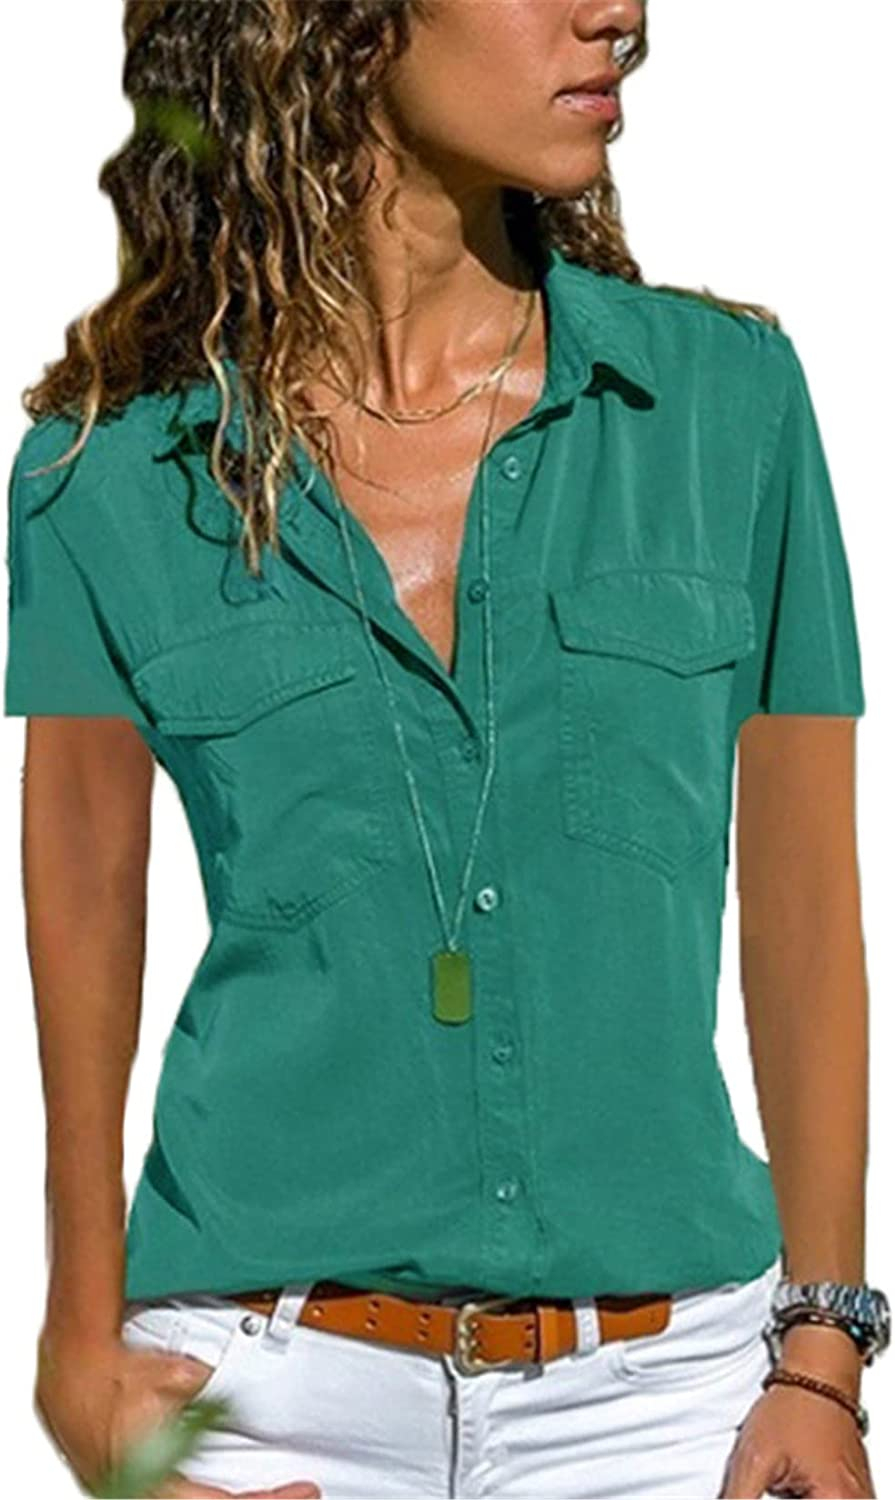 Andongnywell Women's Solid Color Short Sleeve T Shirt Casual V Neck Cuffed Sleeve Button Down Blouses Top with Pocket